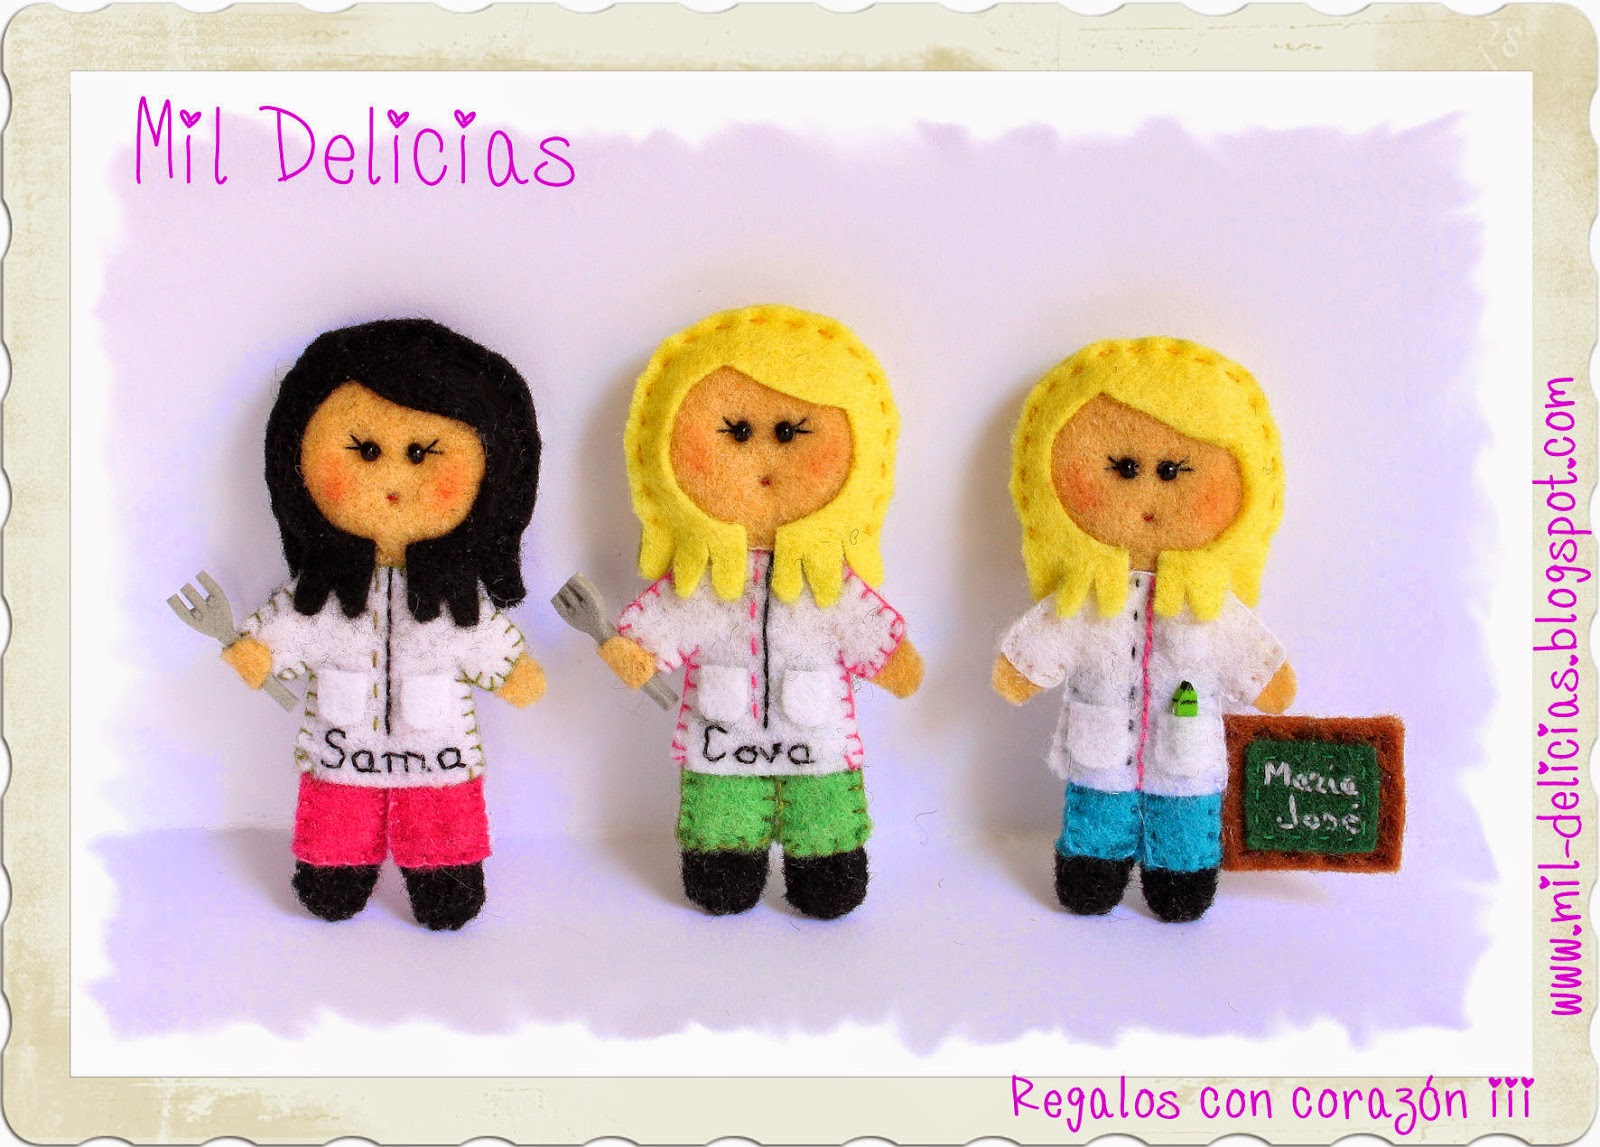 http://mil-delicias.blogspot.com.es/search/label/Broches